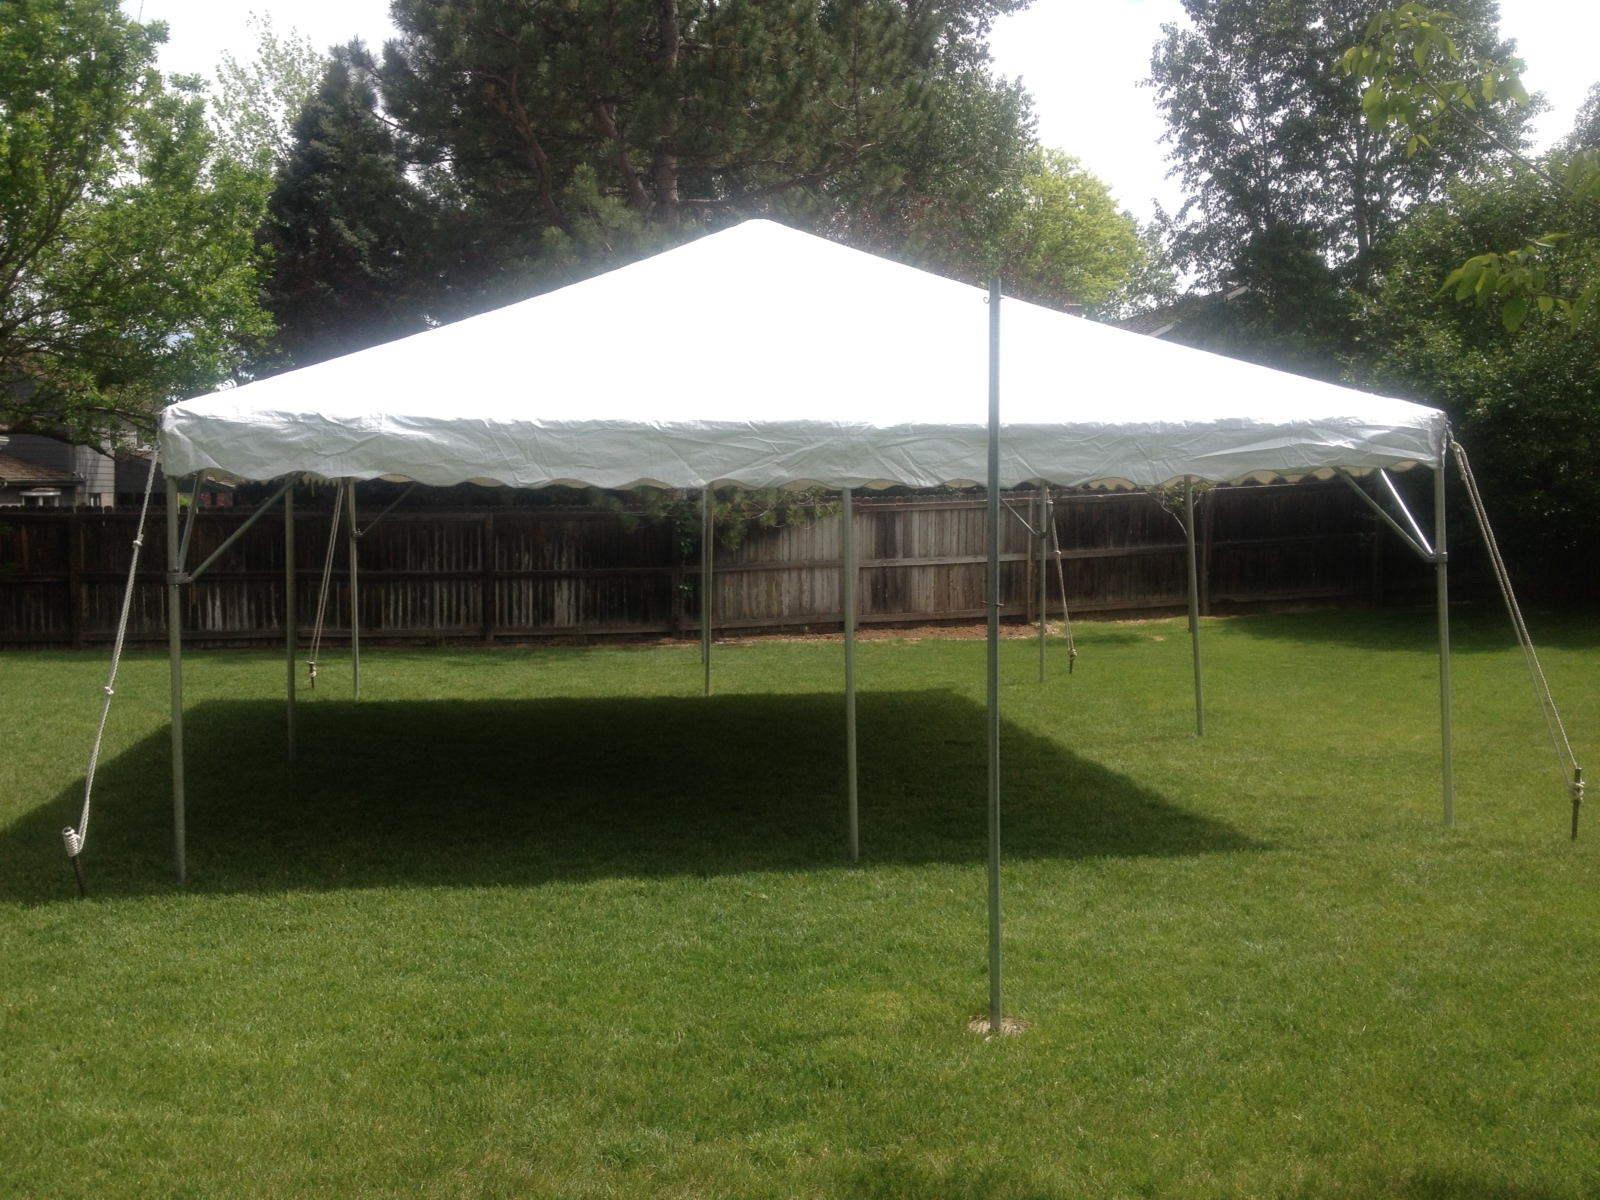 20×20-frame-tent-3 & 20x20-frame-tent-3 | One Stop Event Rentals